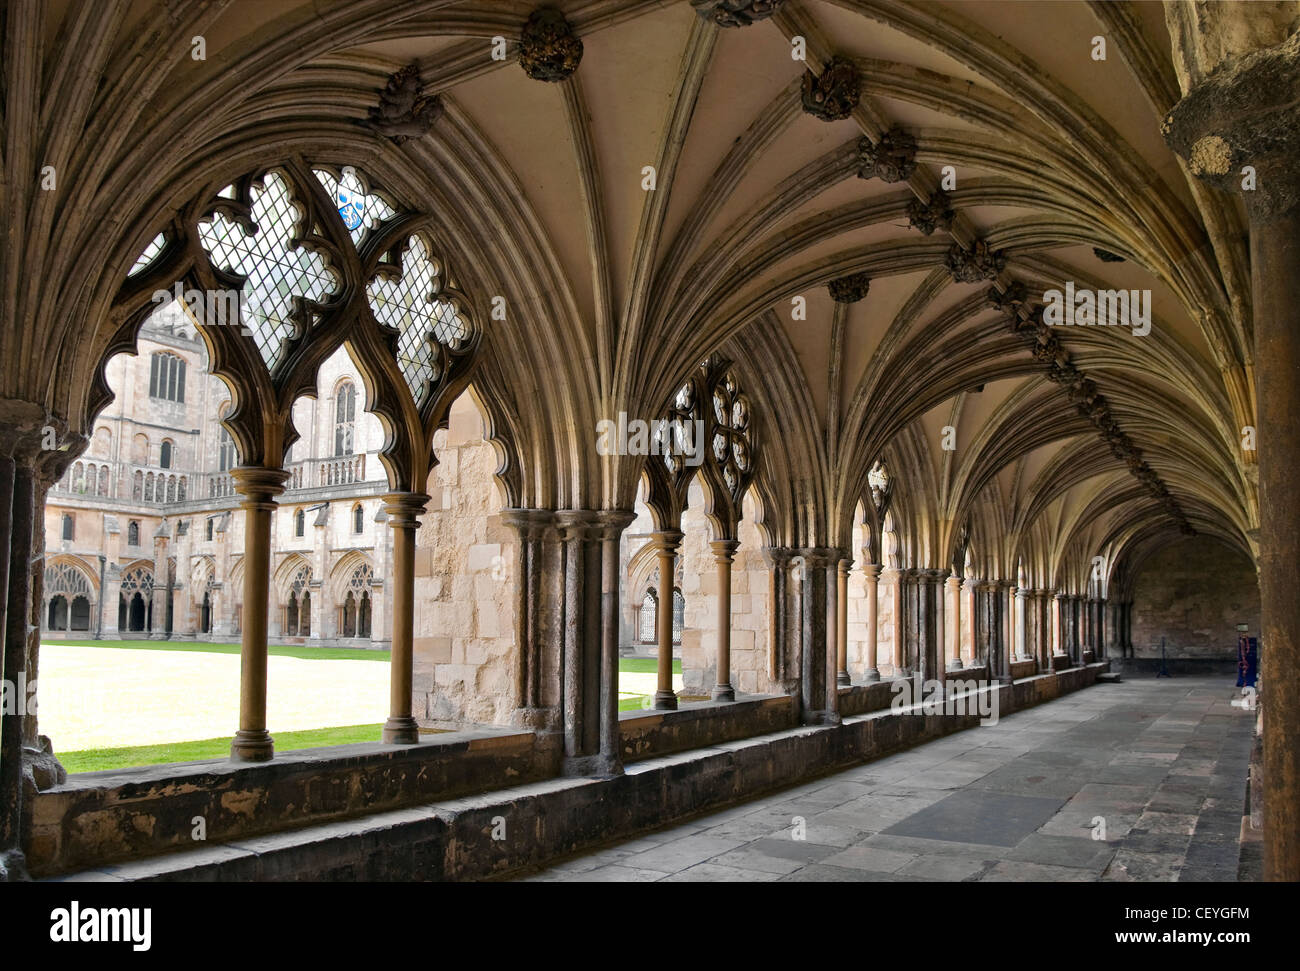 Arched hallway inside the Norwich Cathedral, Norfolk, England.  Gewoelbter Kirchengang in der Kathedrale von Norwich. - Stock Image